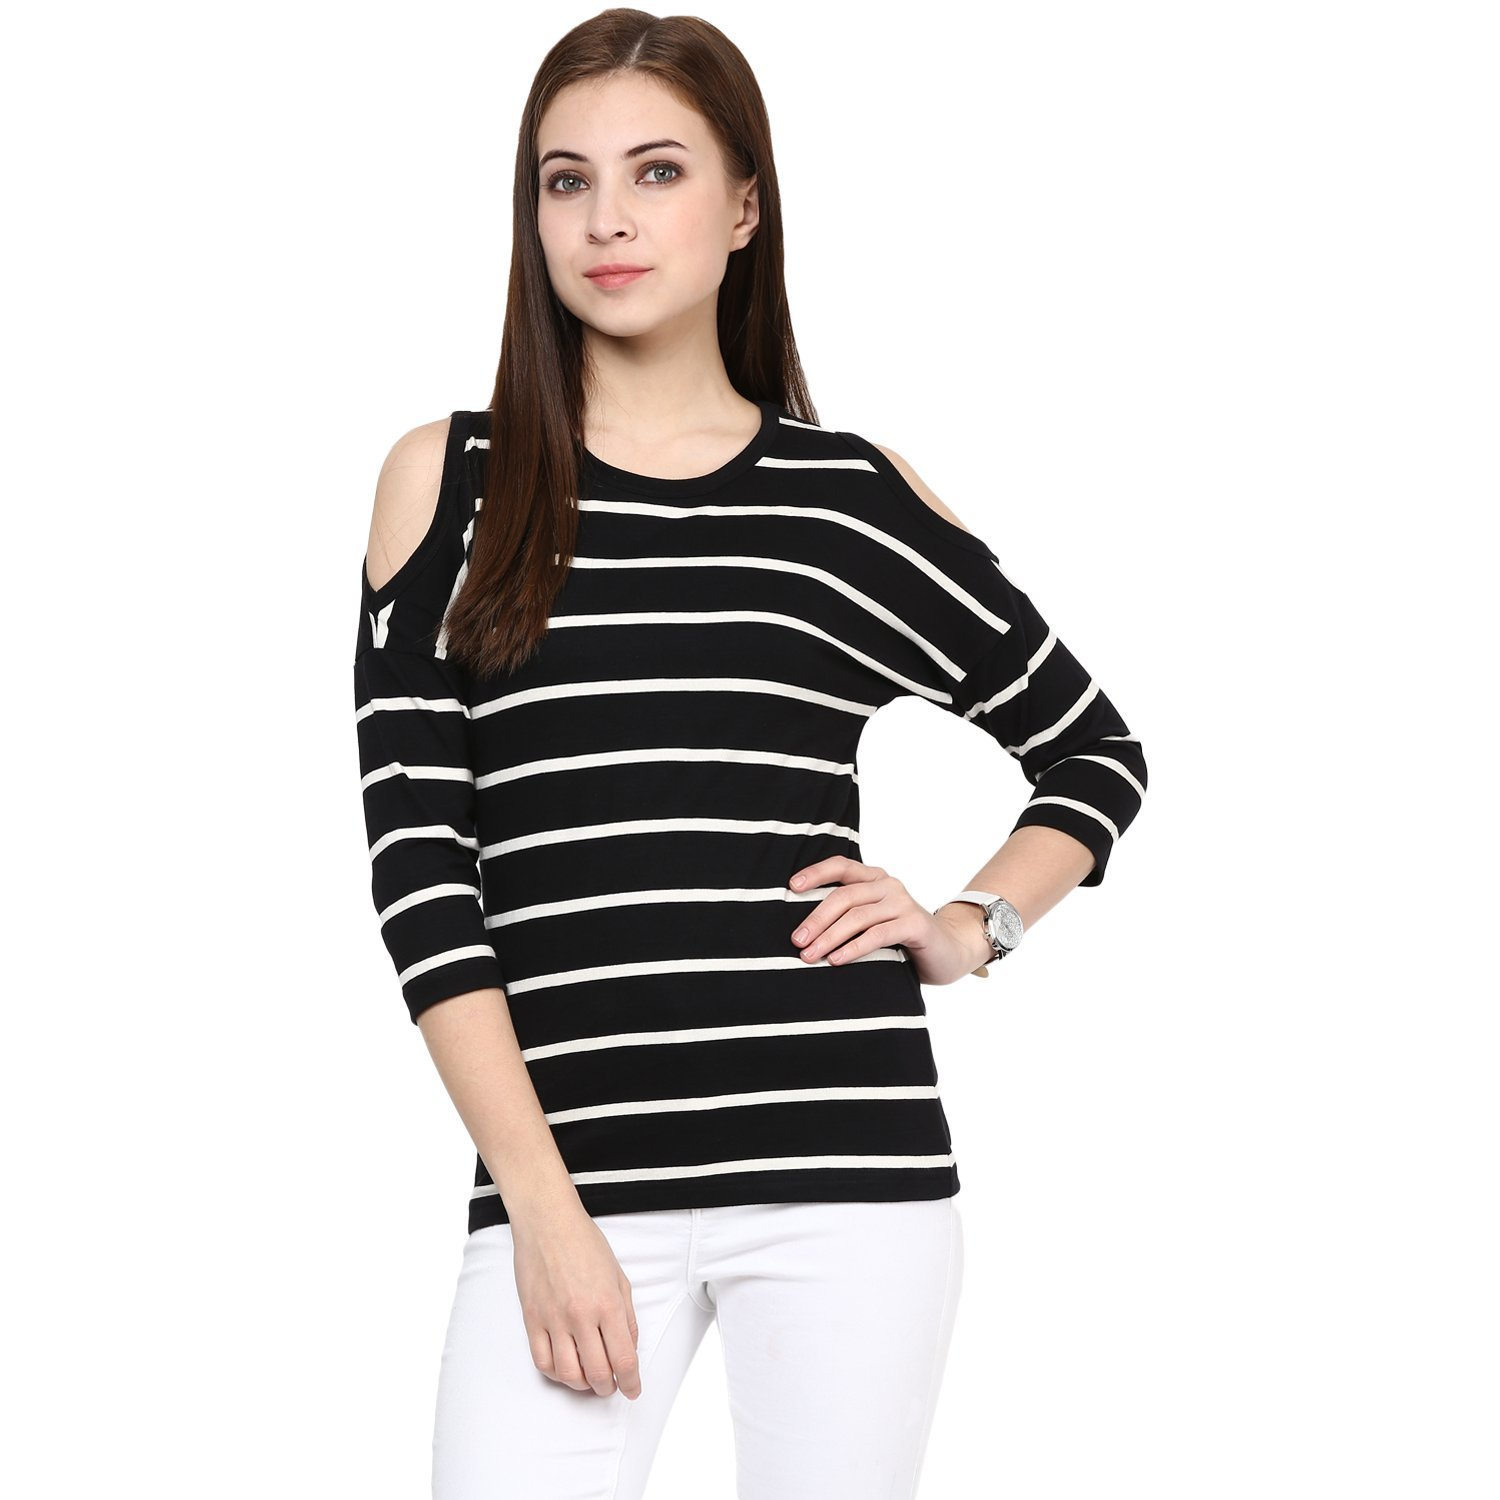 Hypernation Black and White Stripe Round Neck Cotton T-shirt For Women:  Amazon.in: Clothing & Accessories